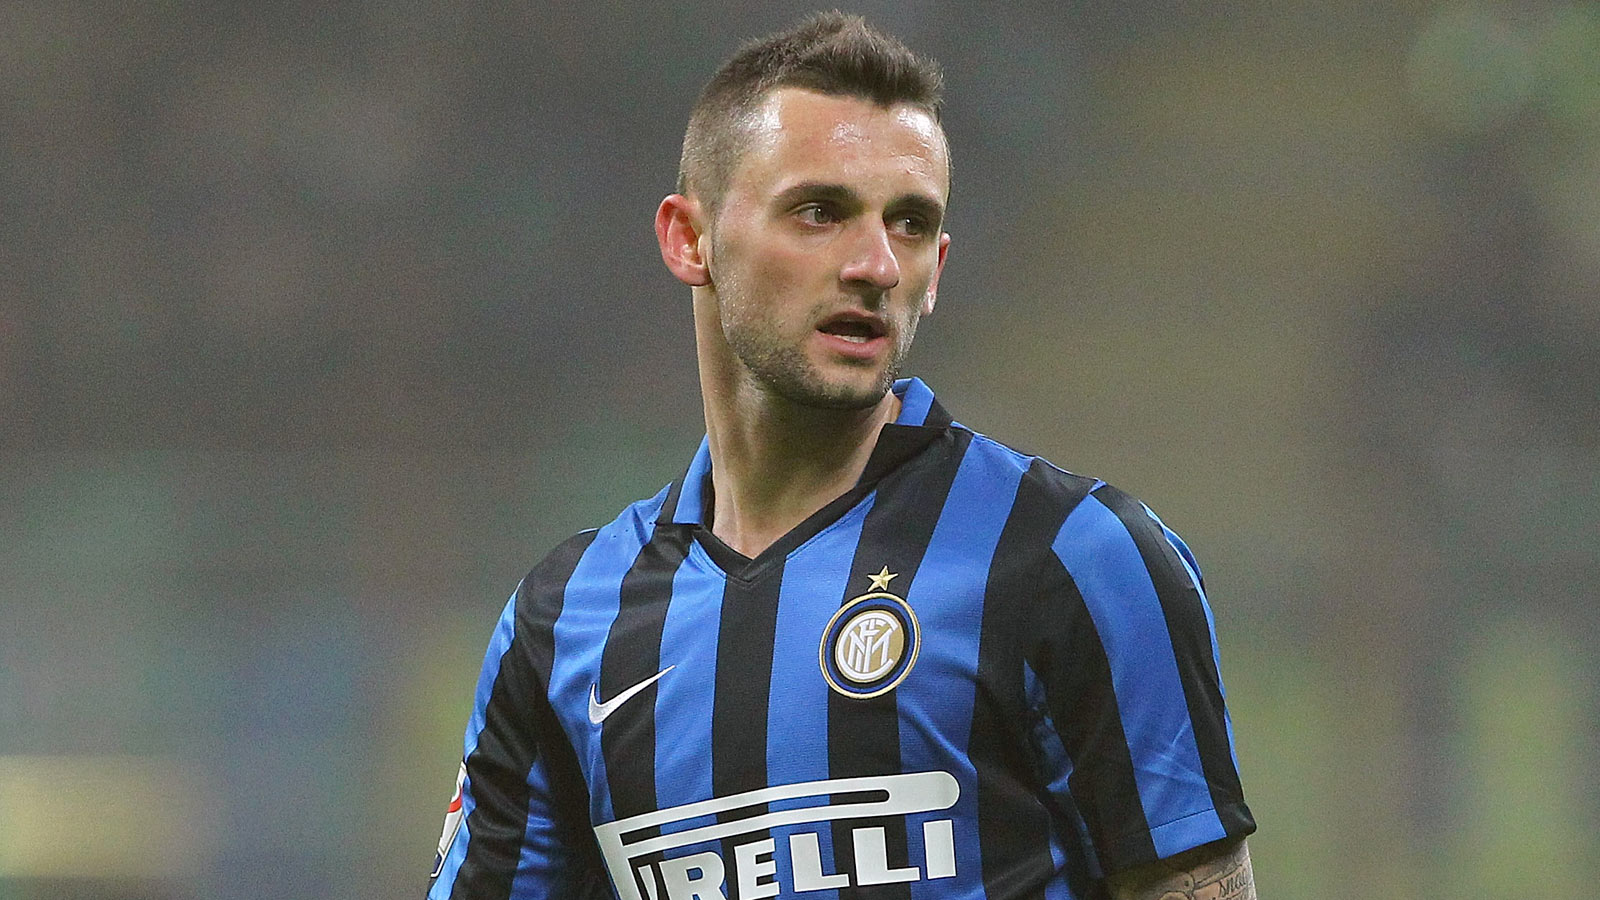 Inter Milan tell Arsenal to pay $26.6million to sign Brozovic